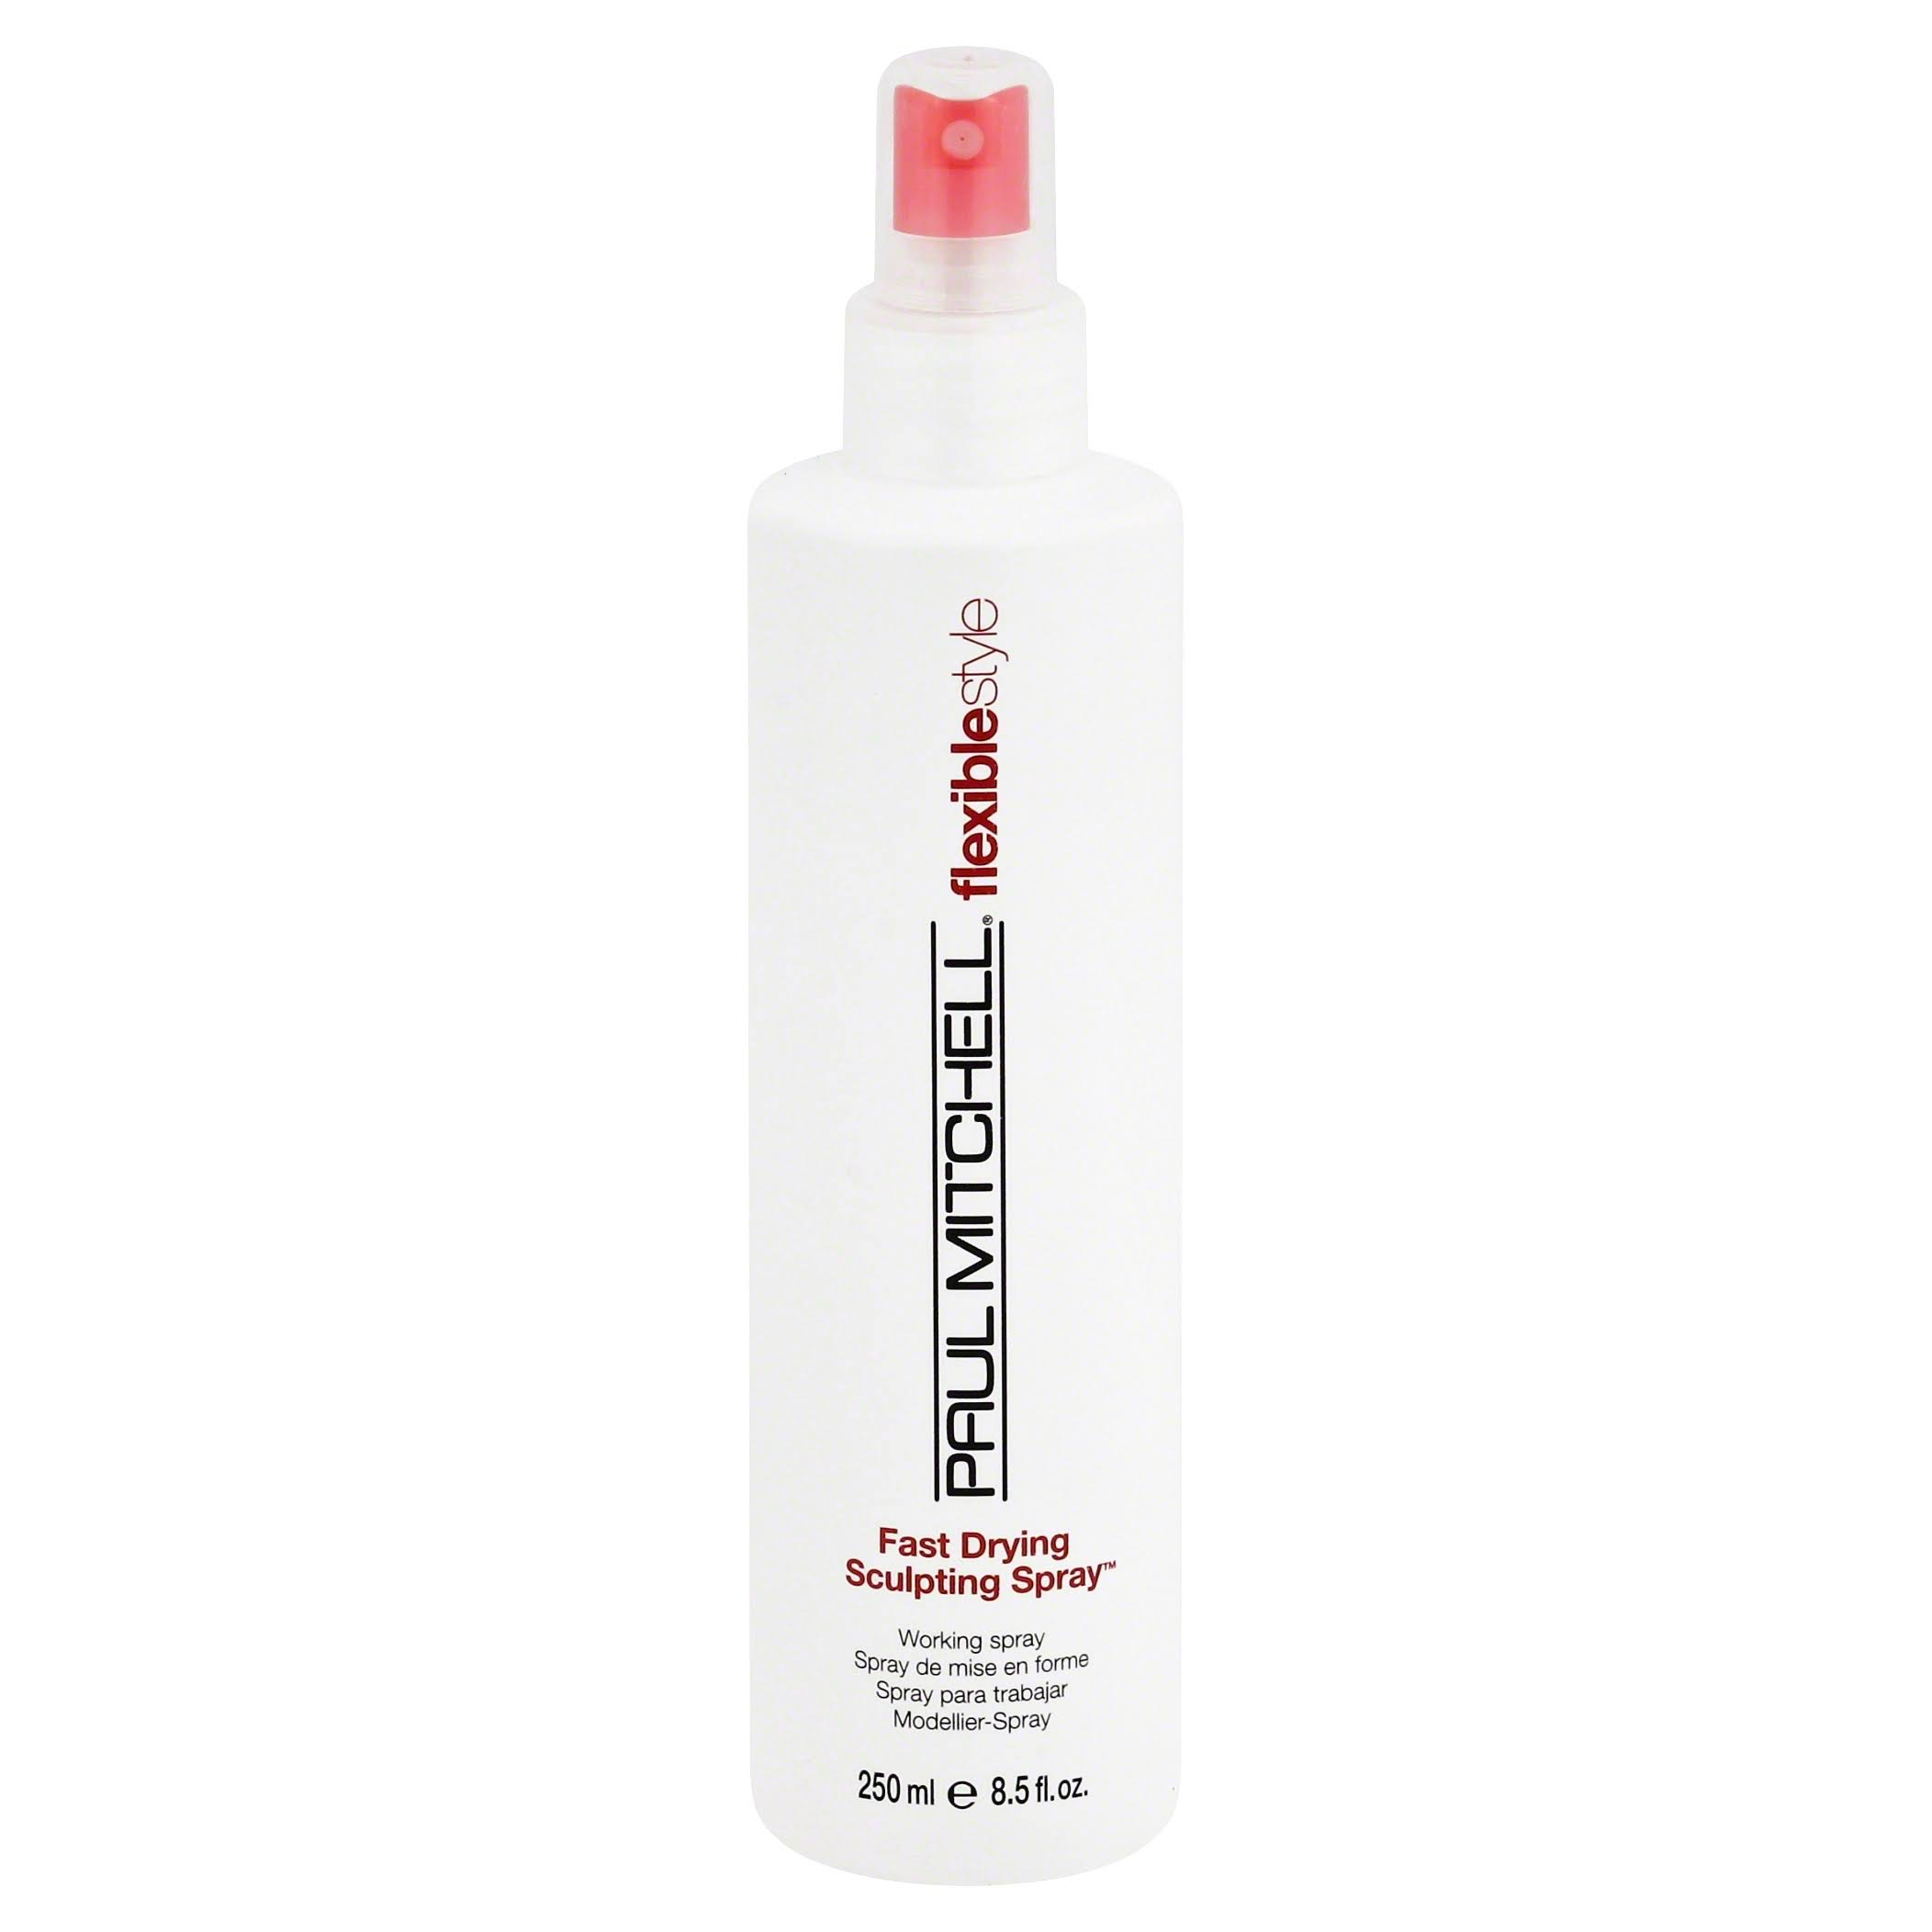 Paul Mitchell Fast Drying Sculpting Hair Spray - 250ml